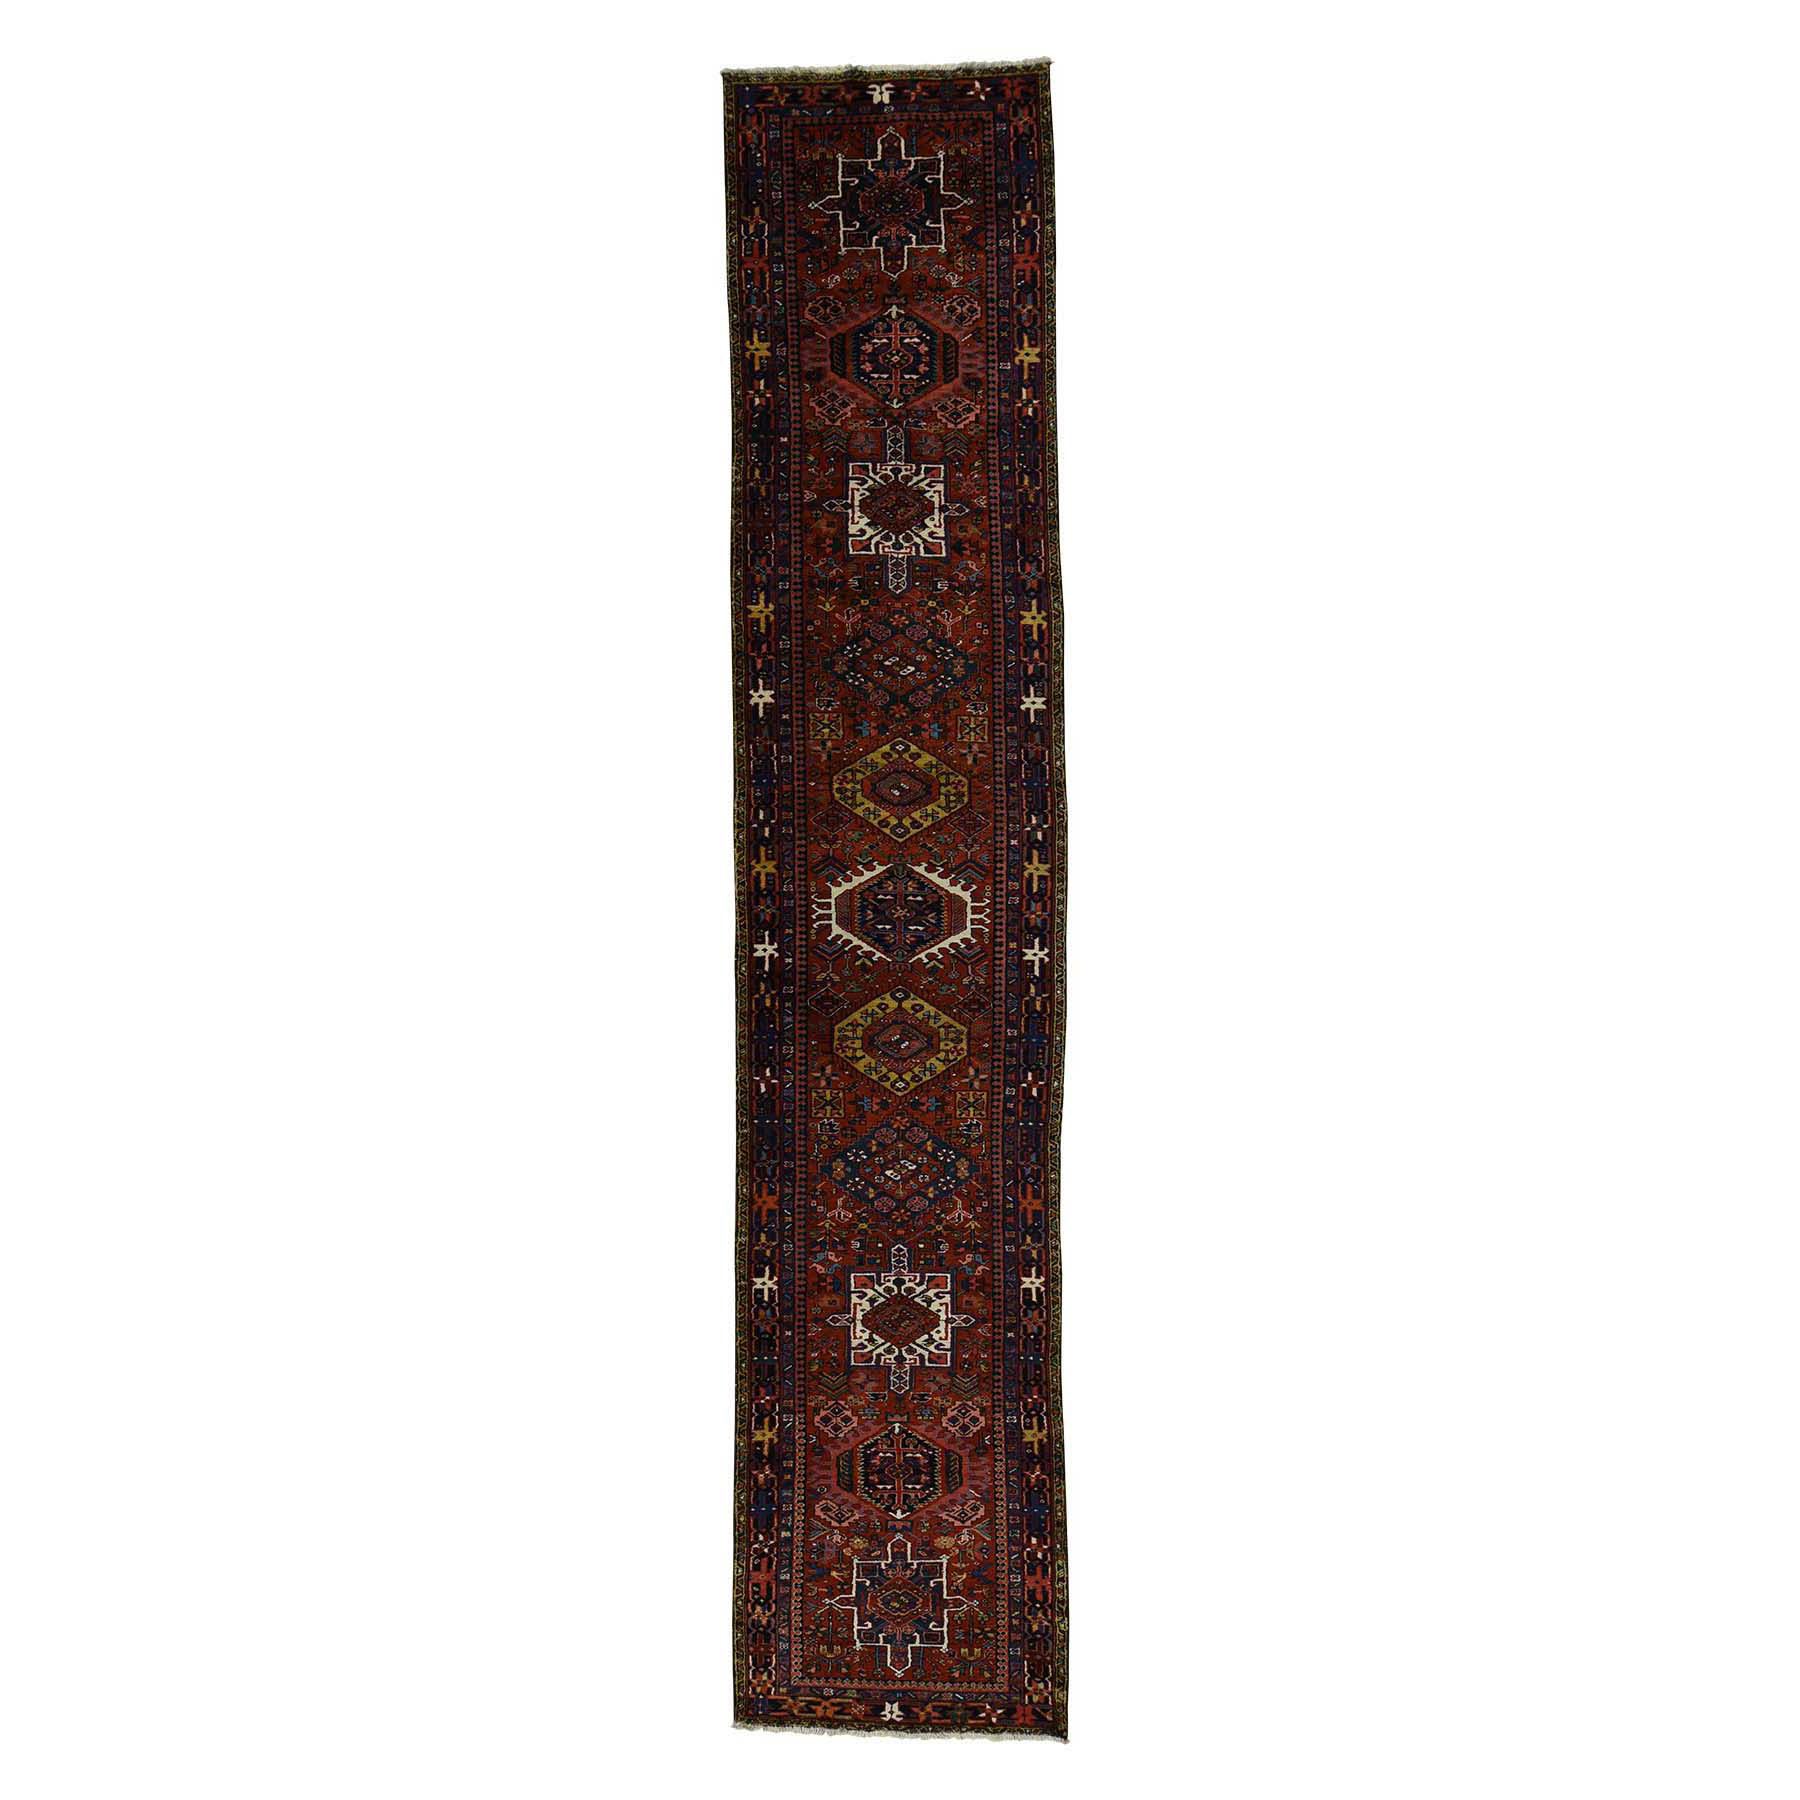 Antique Collection Hand Knotted Red Rug No: 0173752